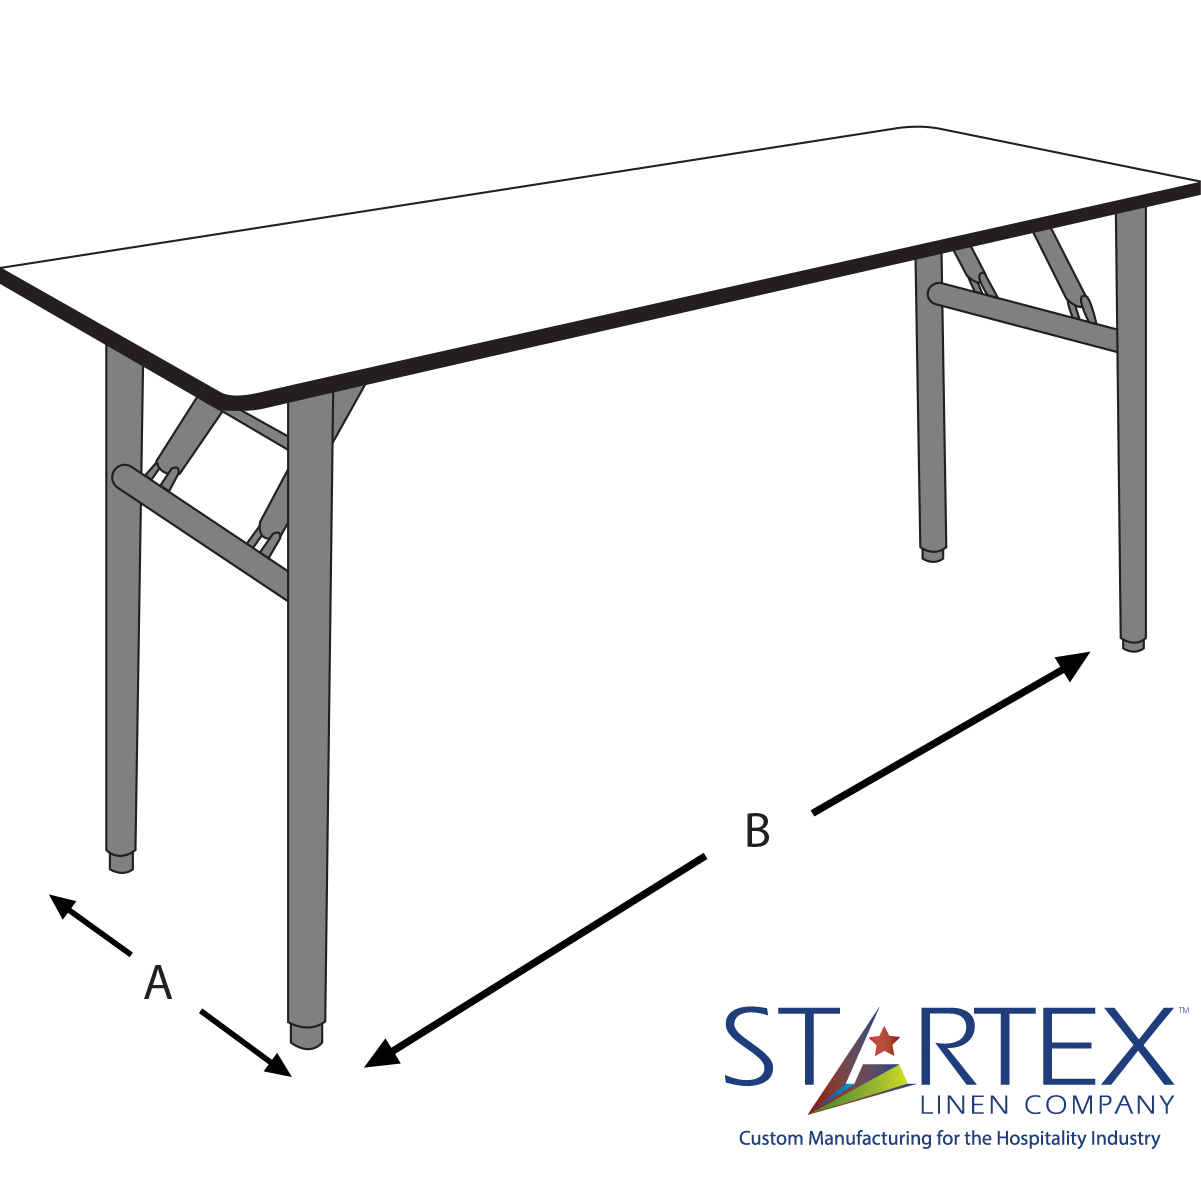 Banquet Tables Size StarTex Linen Company - Banquet table measurements